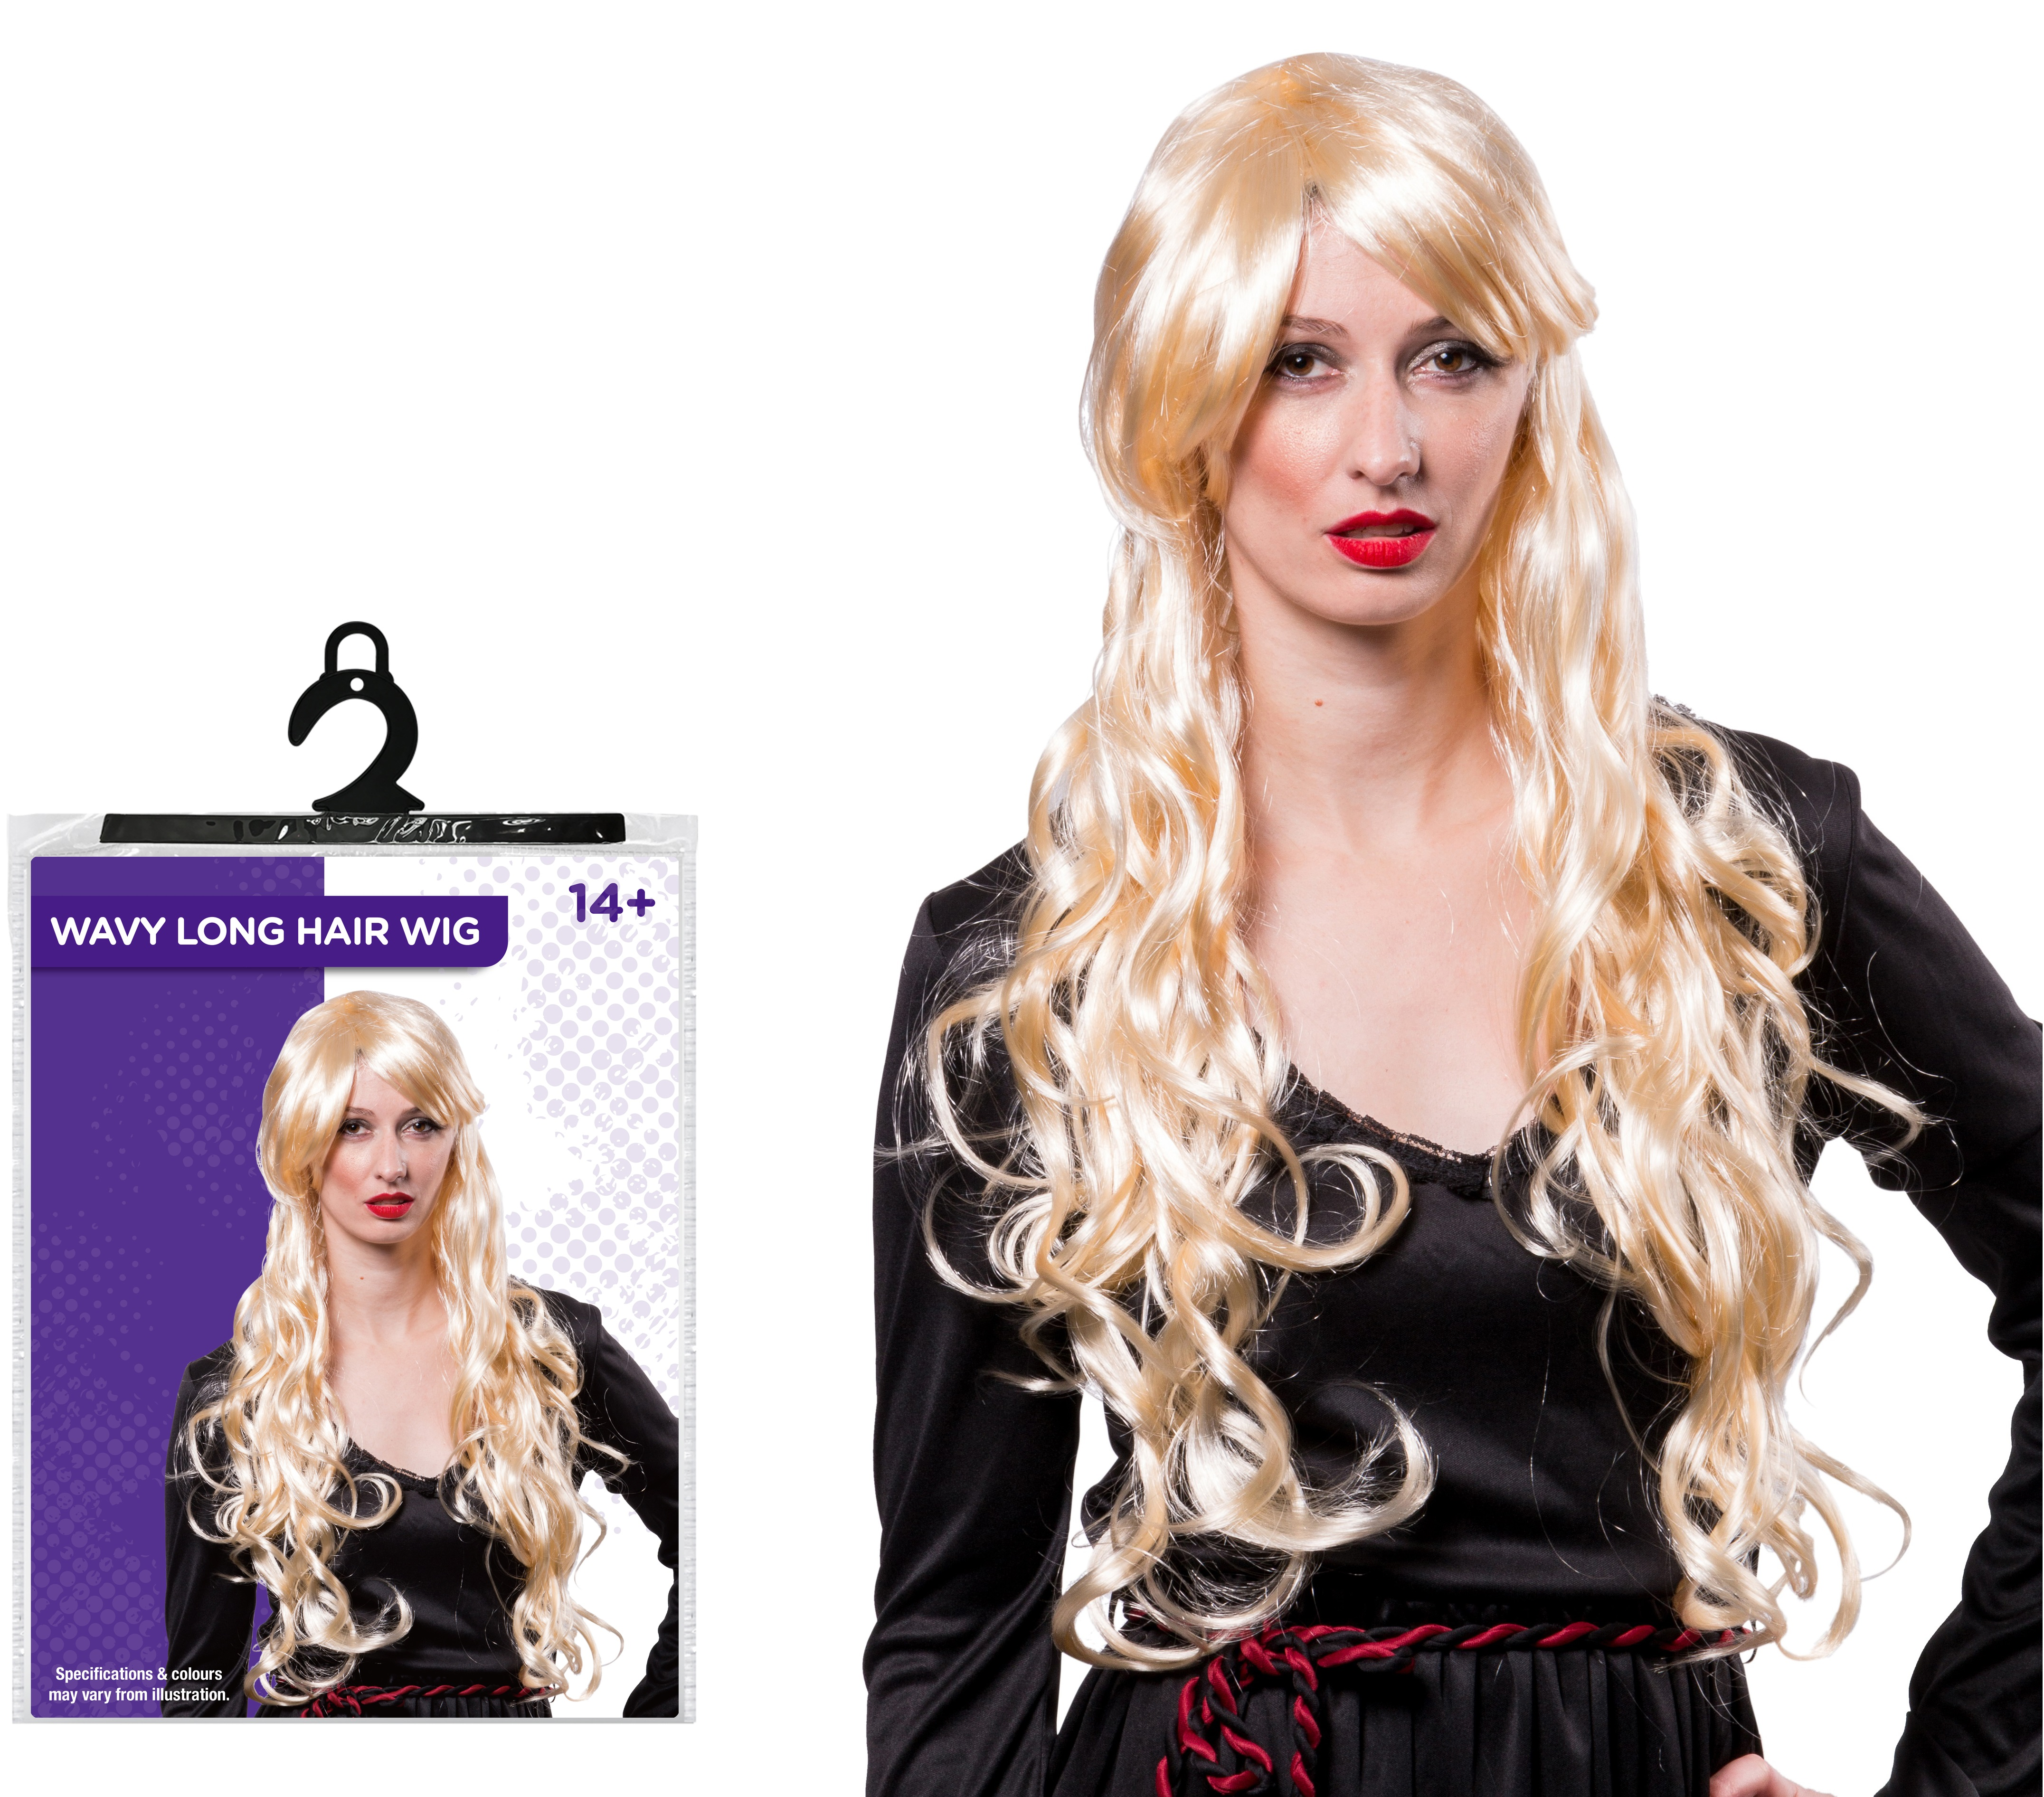 Details about Halloween Ladies Fancy Dress Party Costume Wavy Long Blonde  Hair Wig Accessory